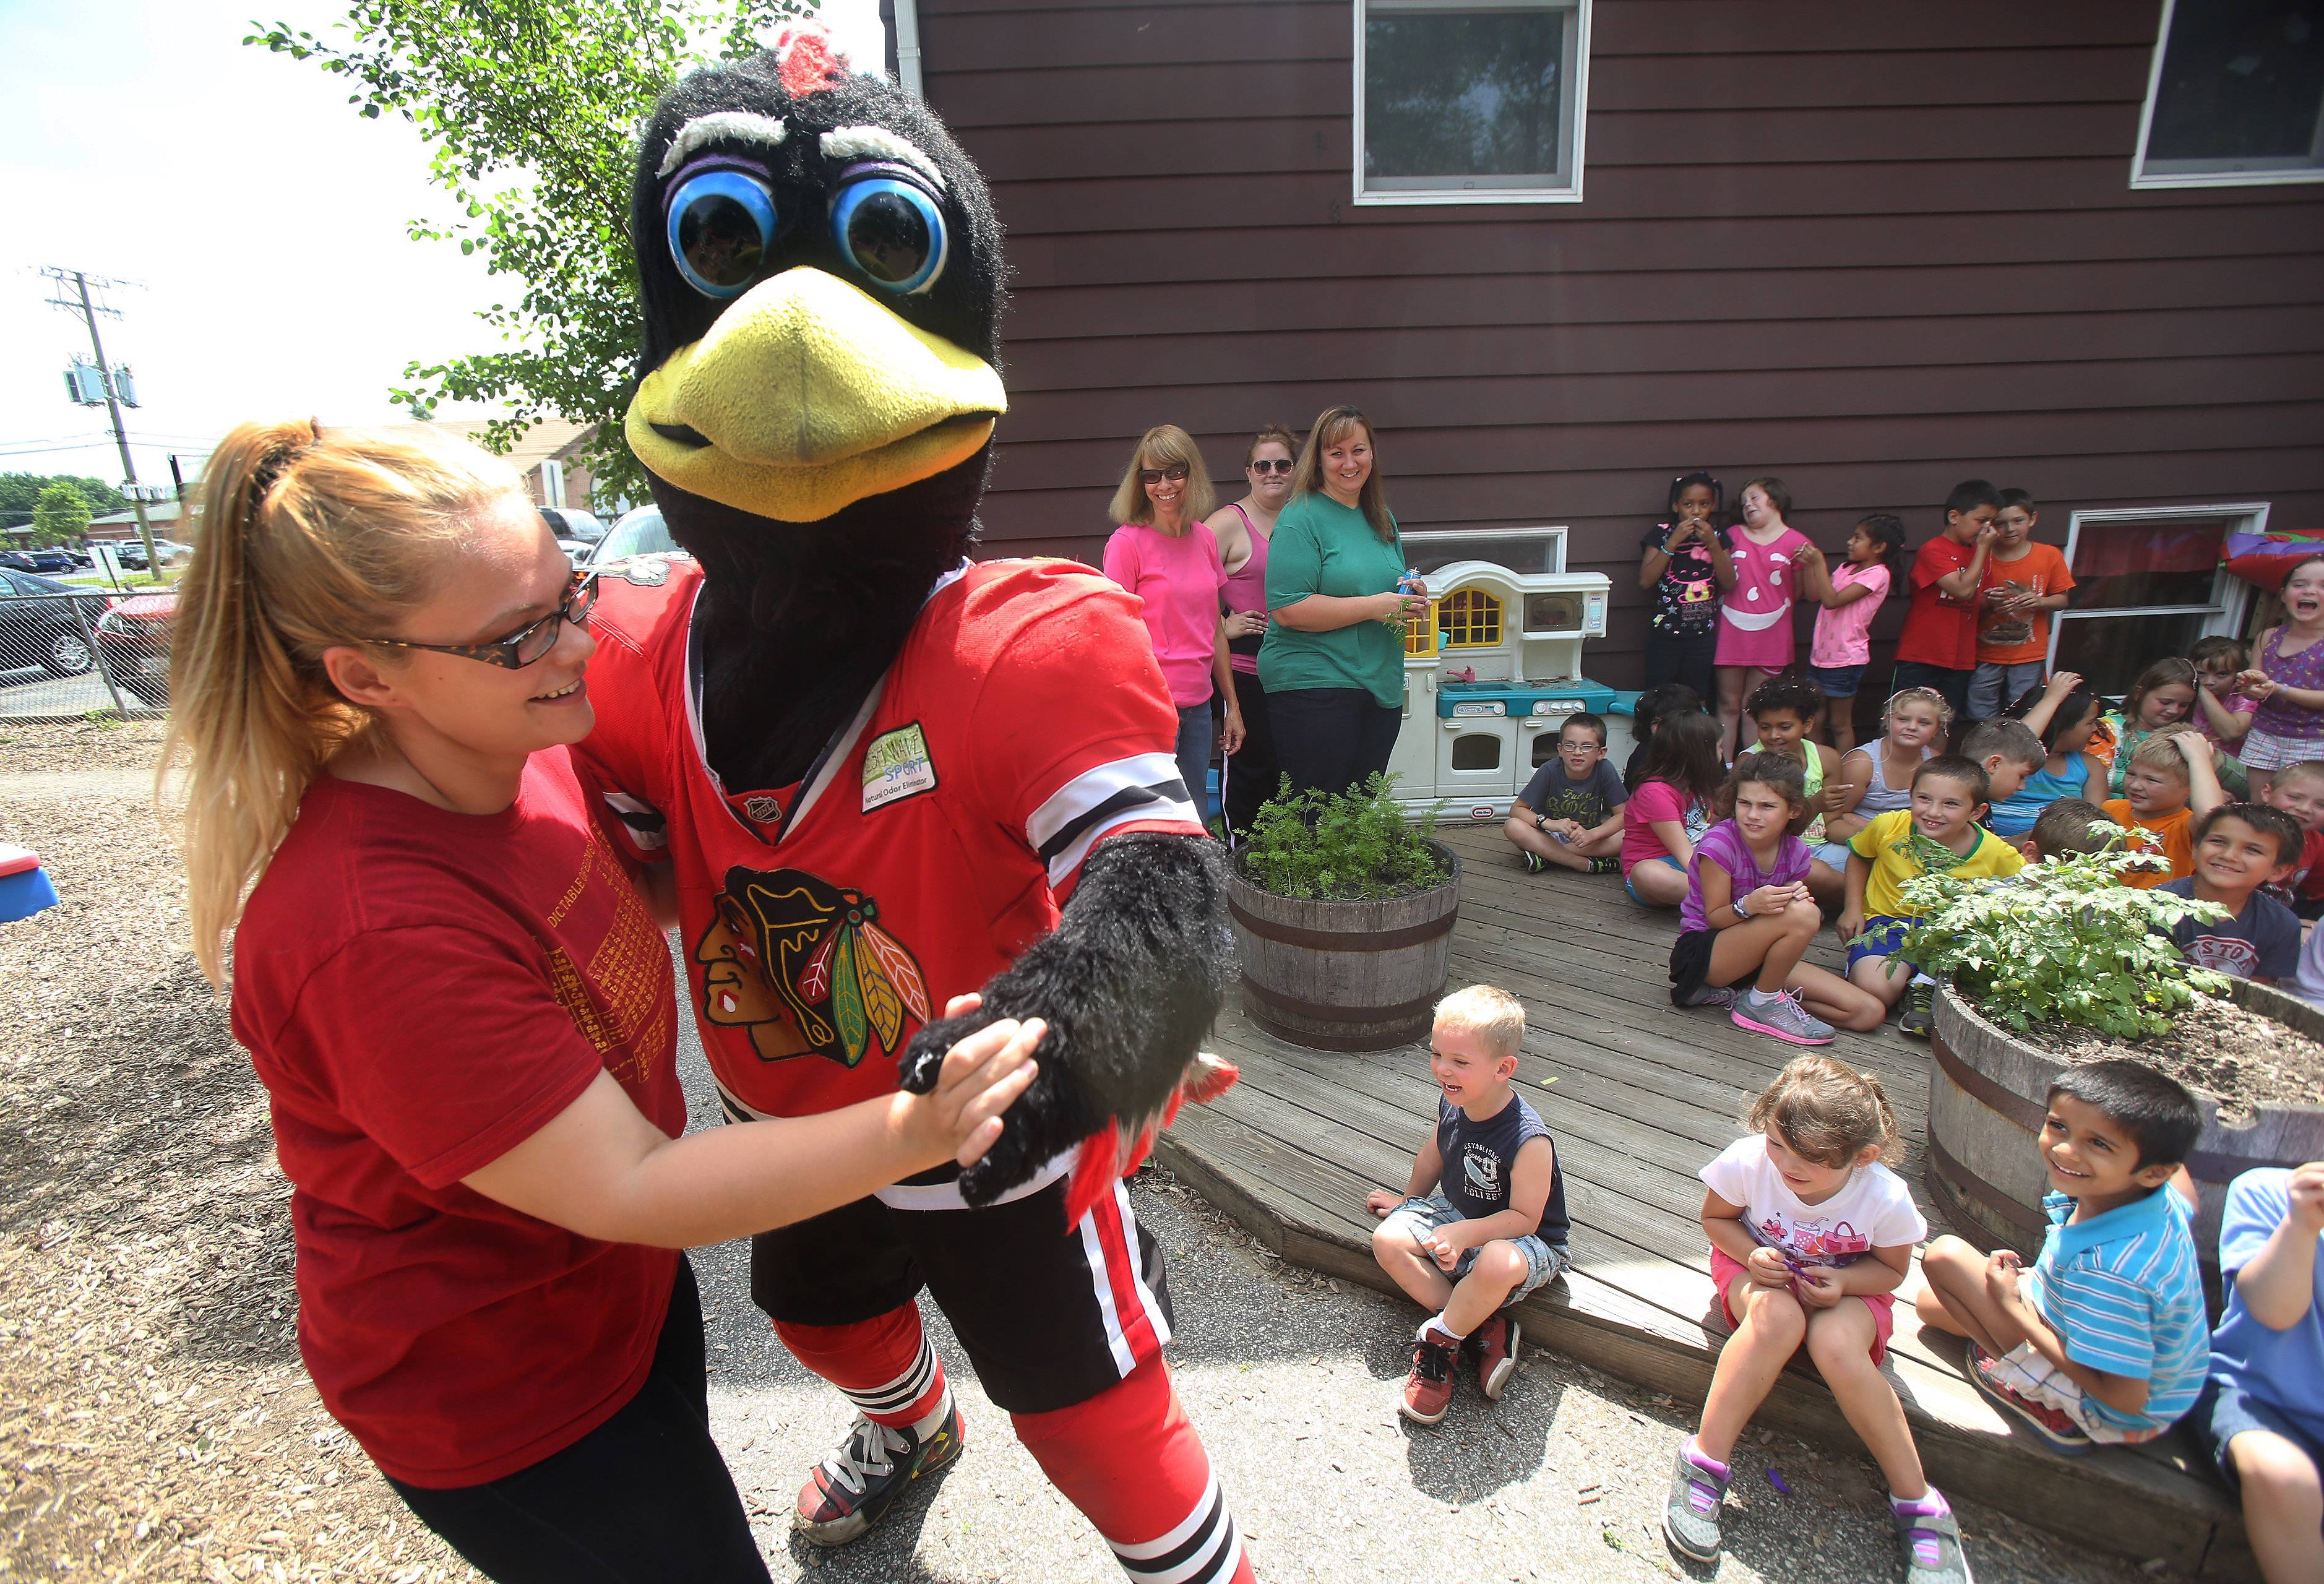 Blackhawks mascot Tommy Hawk dances with prekindergarten teacher Brittany Ankney on Monday in Lindenhurst